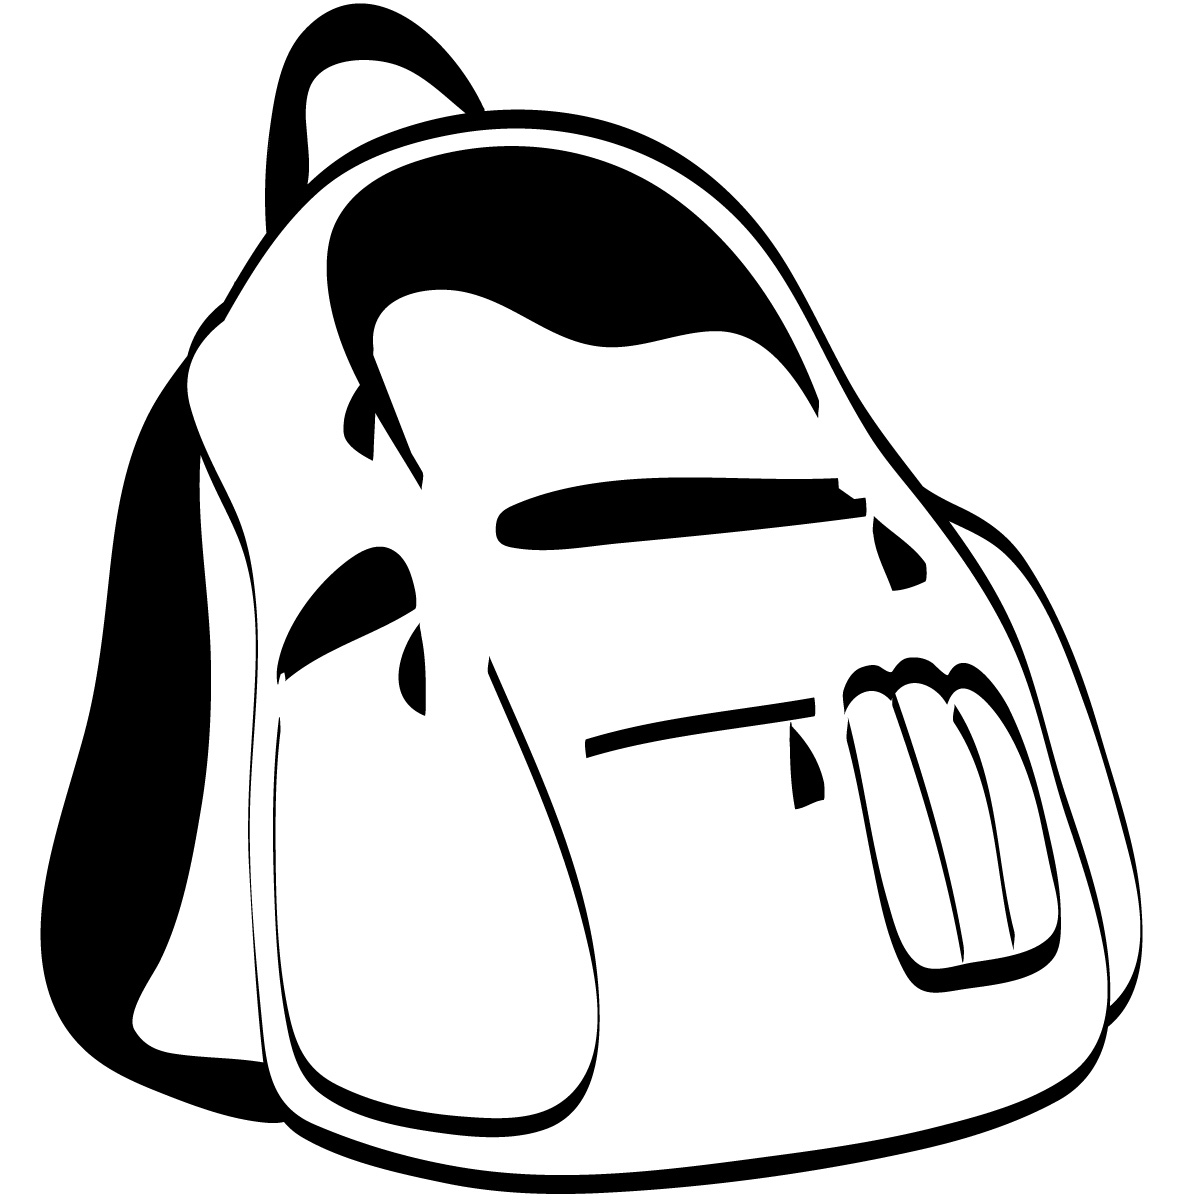 Bag Clipart Black And White   Clipart Panda   Free Clipart Images